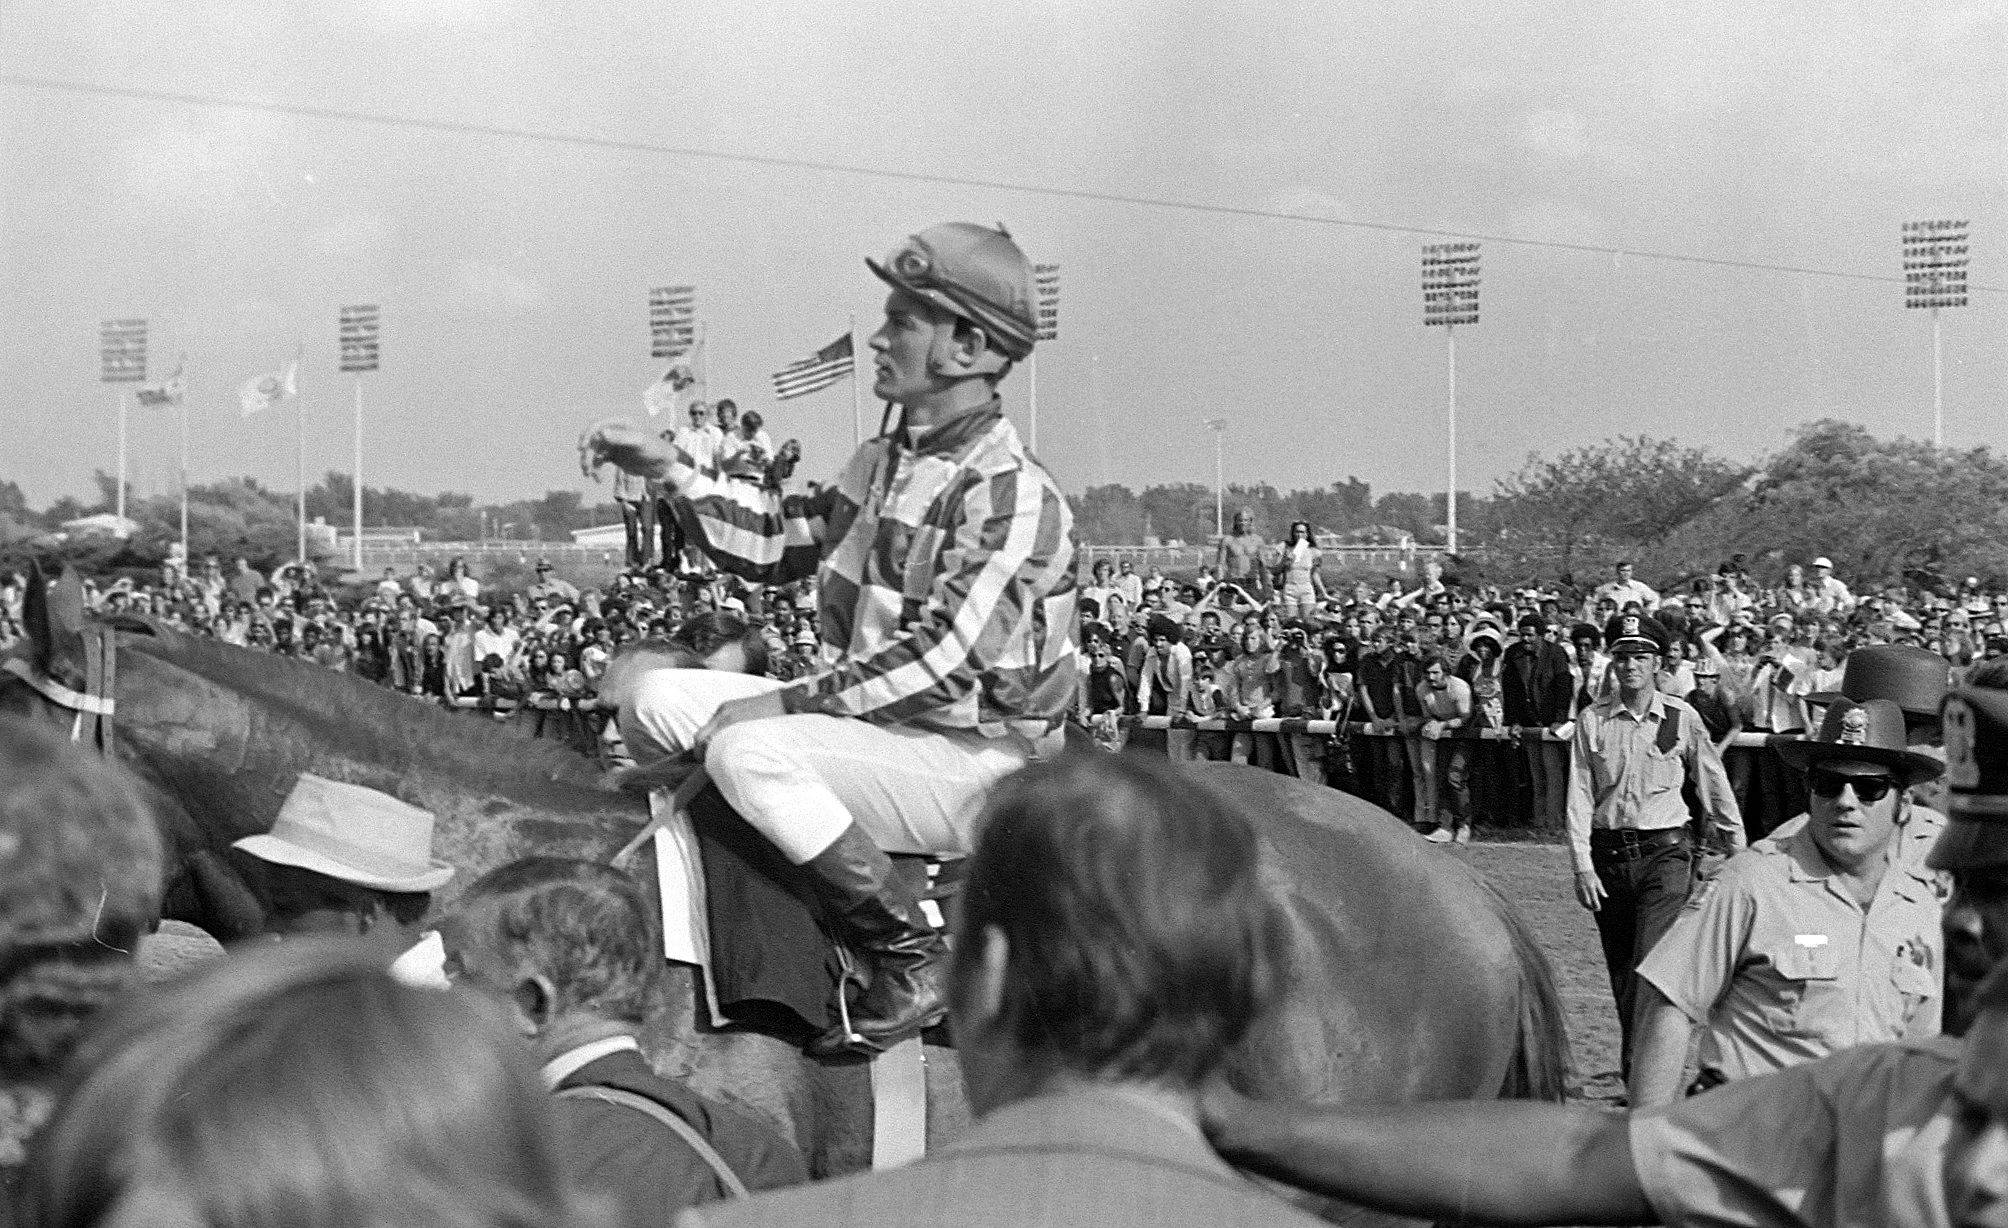 With jockey Ron Turcotte aboard, super horse Secretariat won easily in his Arlington Invitational race on June 30, 1973. It was Secretariat's first race after winning the Belmont and capturing the Triple Crown.